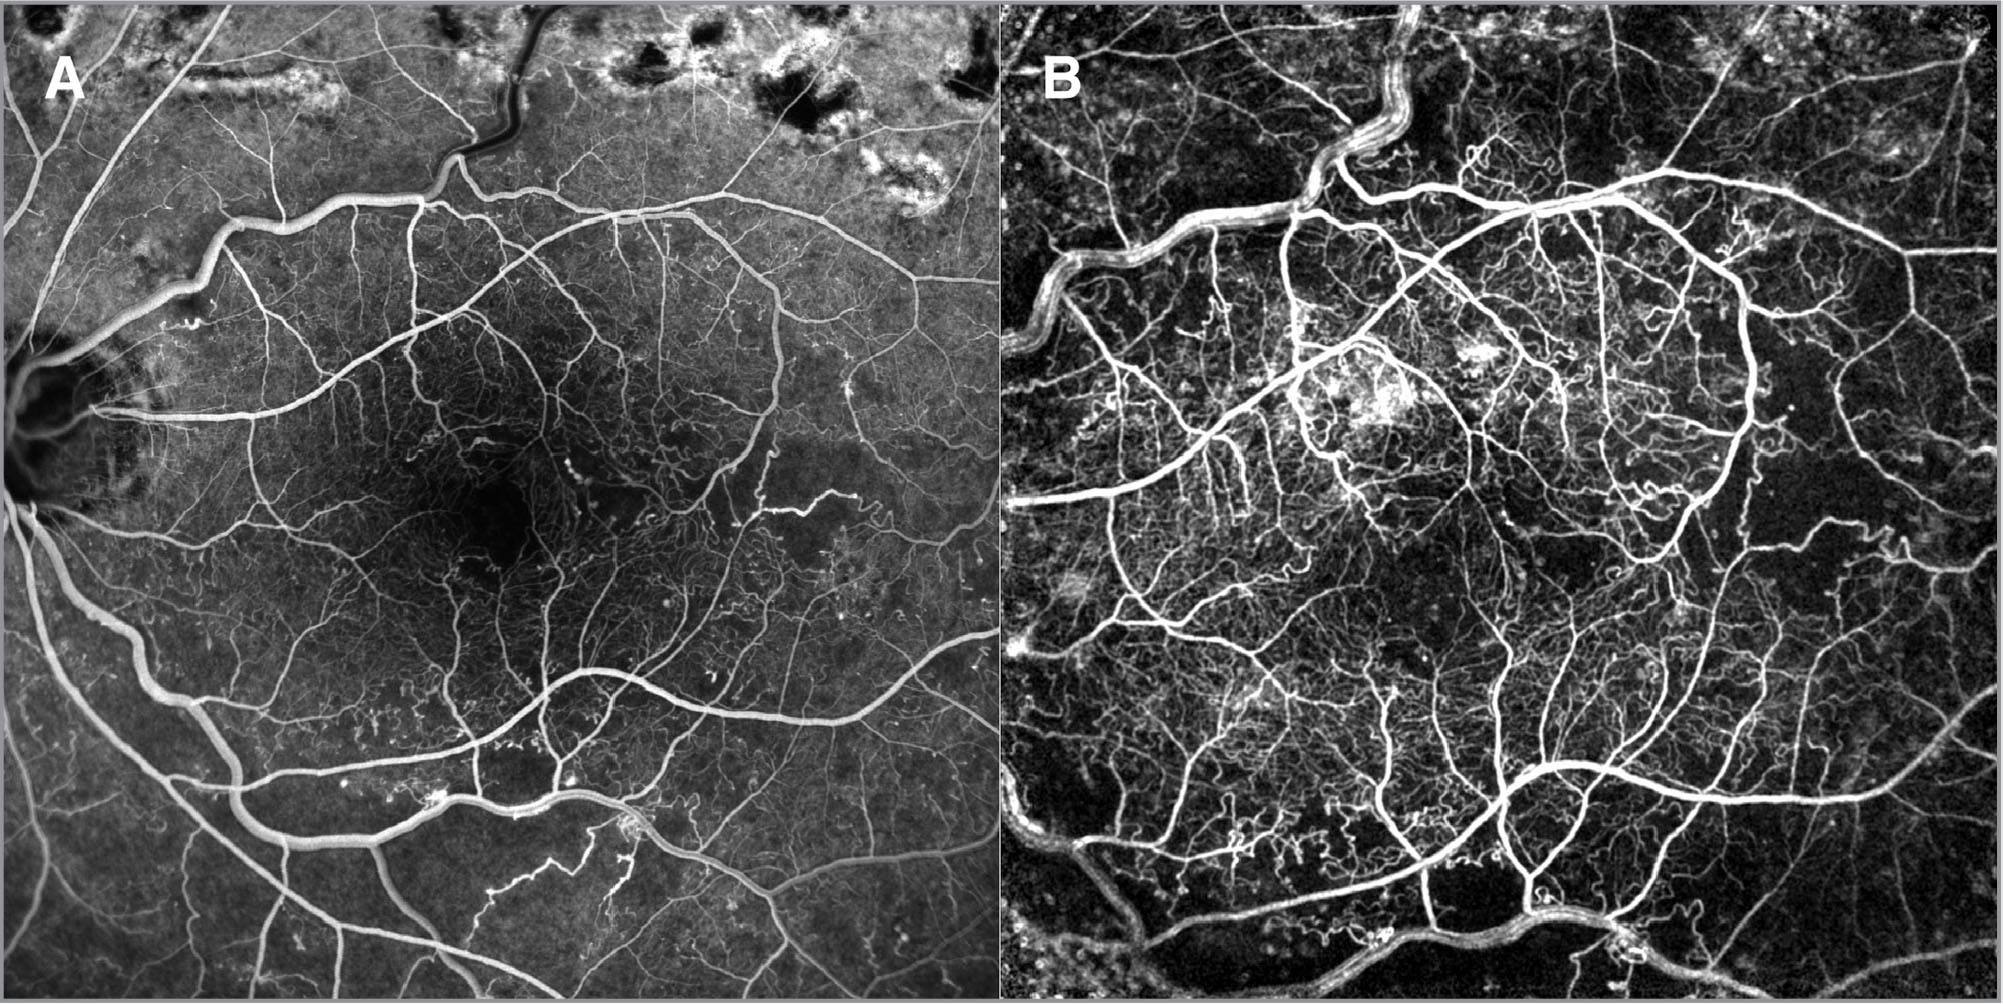 This patient study (Patient 5) was obtained 7 months after an excellent response to intravitreal bevacizumab in the left eye. He was diagnosed with central retinal vein occlusion 62 months prior to the Retinal Functional Imager (RFI) scan and had a total of three intravitreal triamcinolone and four intravitreal bevacizumab injections. His vision at the time of the RFI scan was 20/20. The RFI image (A) closely parallels the appearance of the fluorescein angiogram (B) in terms of vascular resolution and depicting nonperfusion. The flow velocities, though diminished from the controls, were not as depressed as in other cases with poor visual acuity as demonstrated in Table 3.